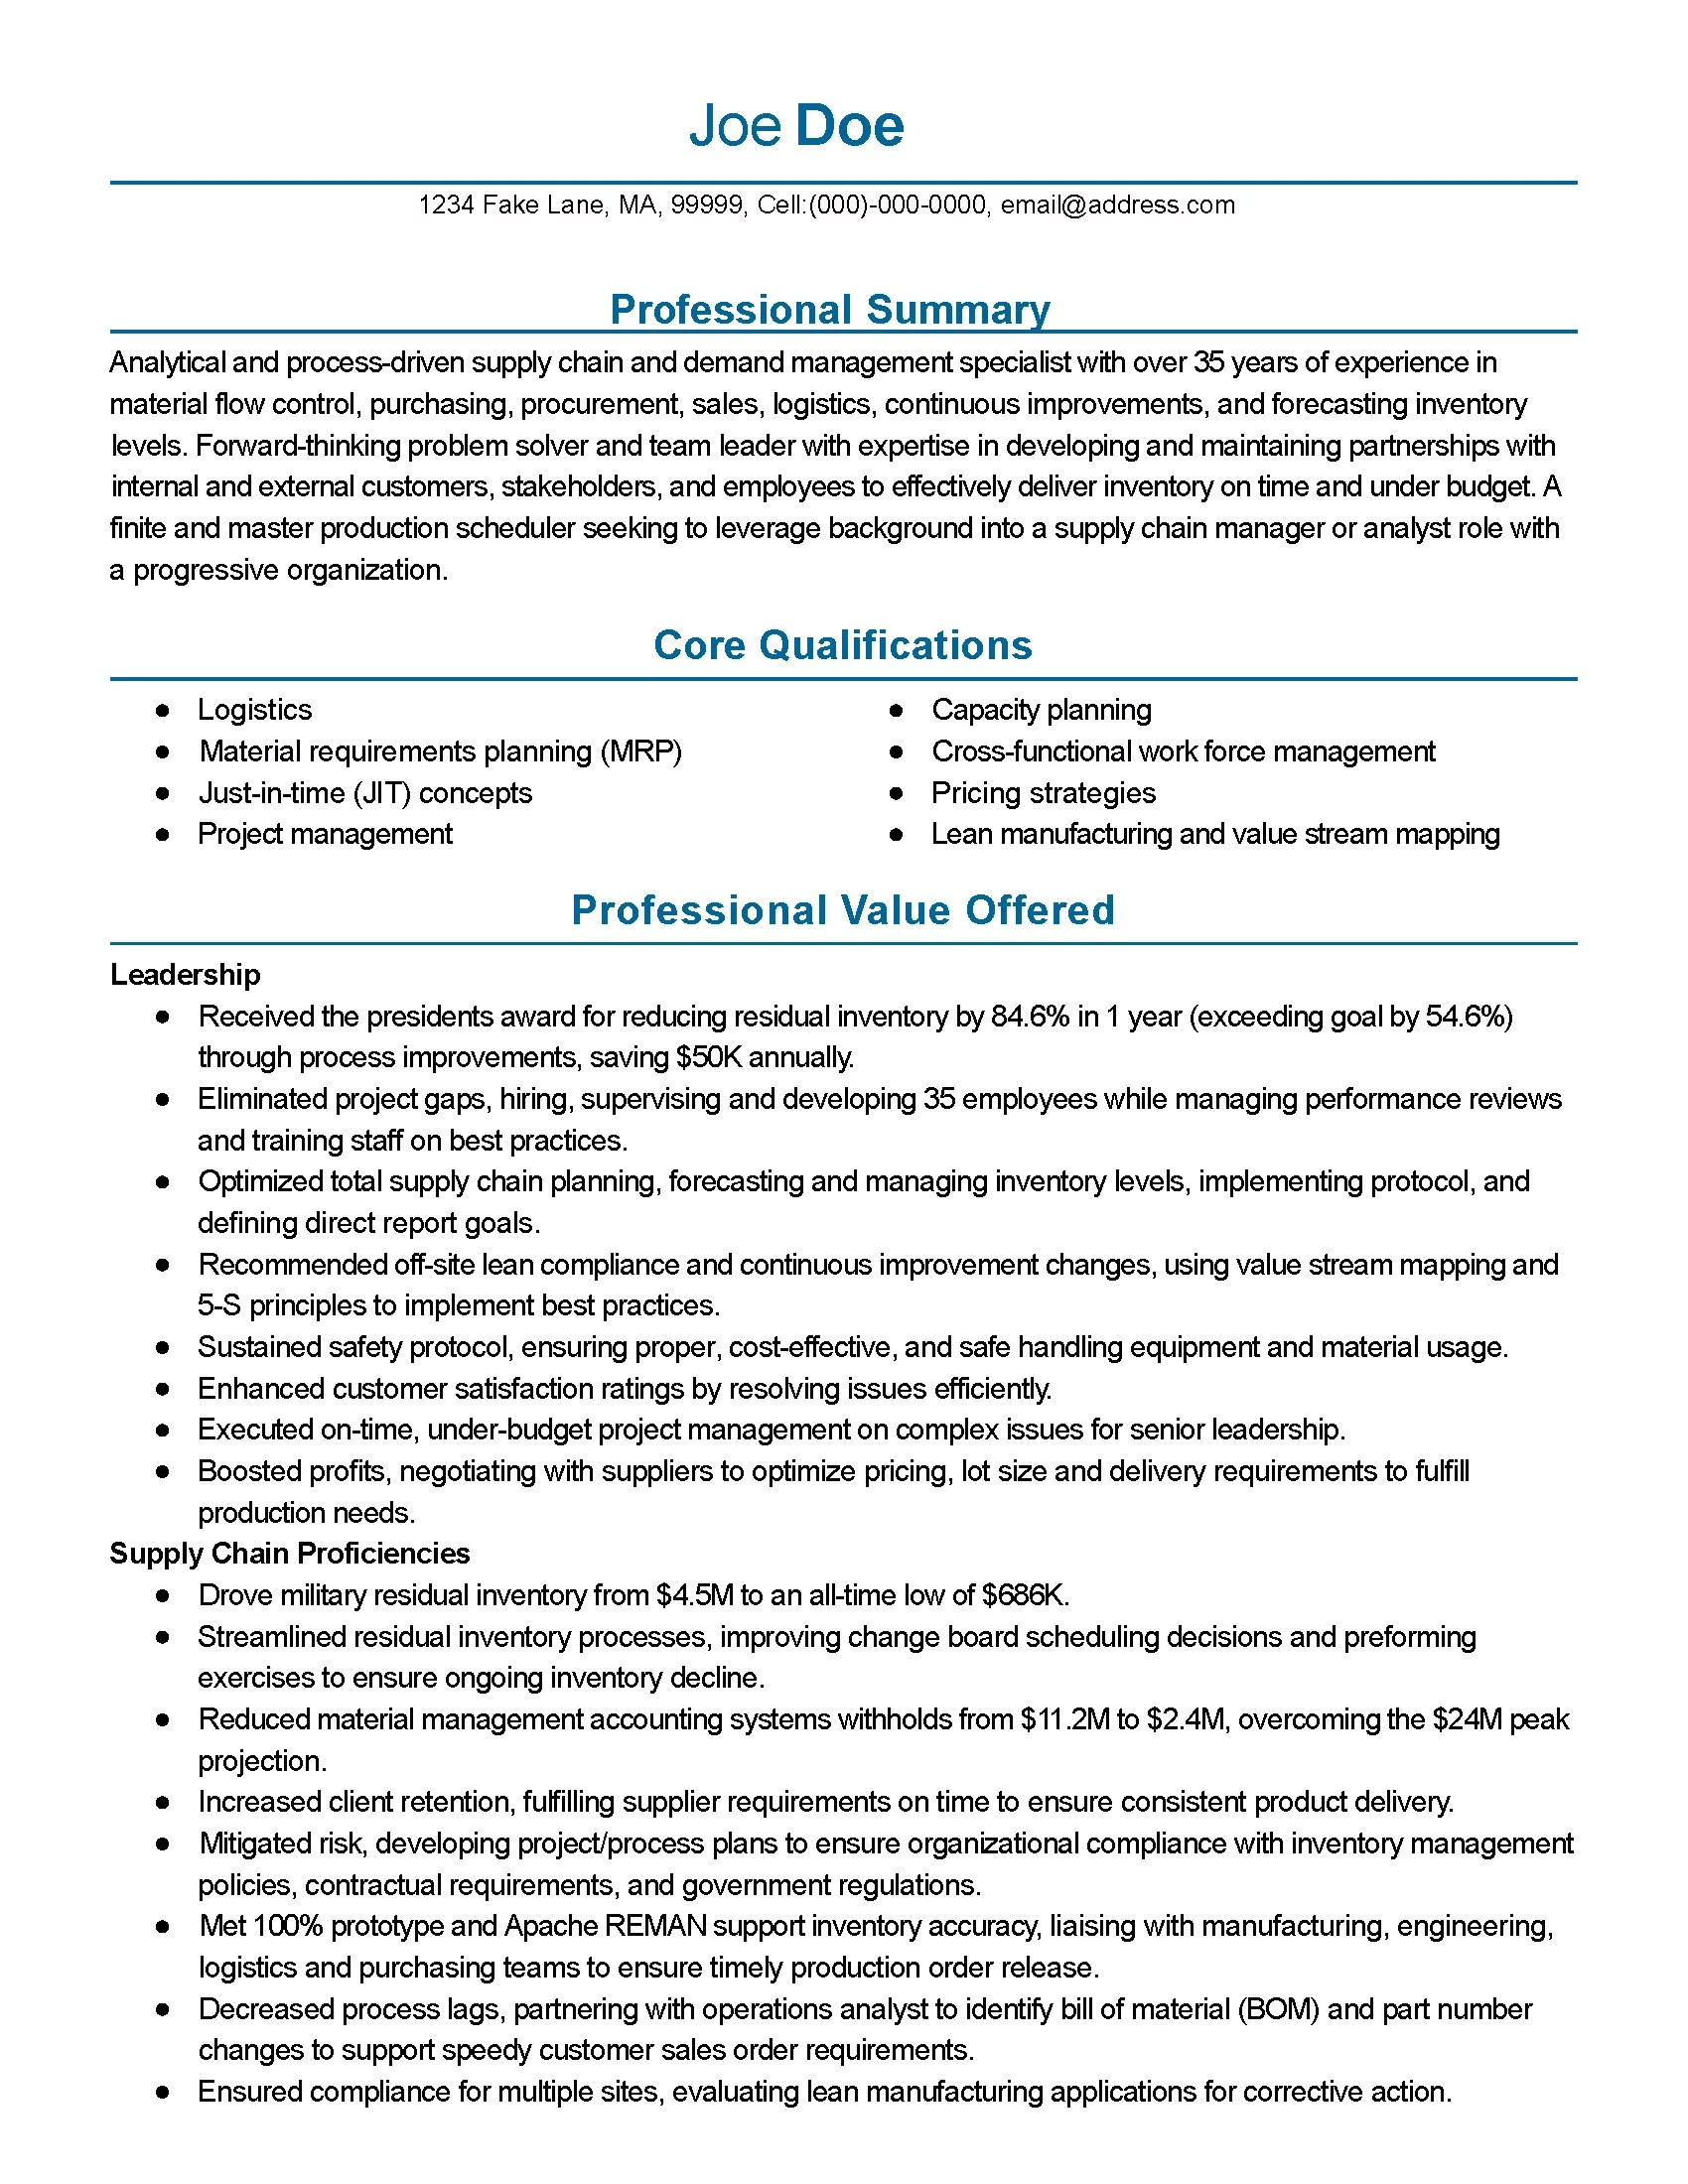 Document Control Specialist Resume Sample Professional Supply Chain Management Templates To Showcase